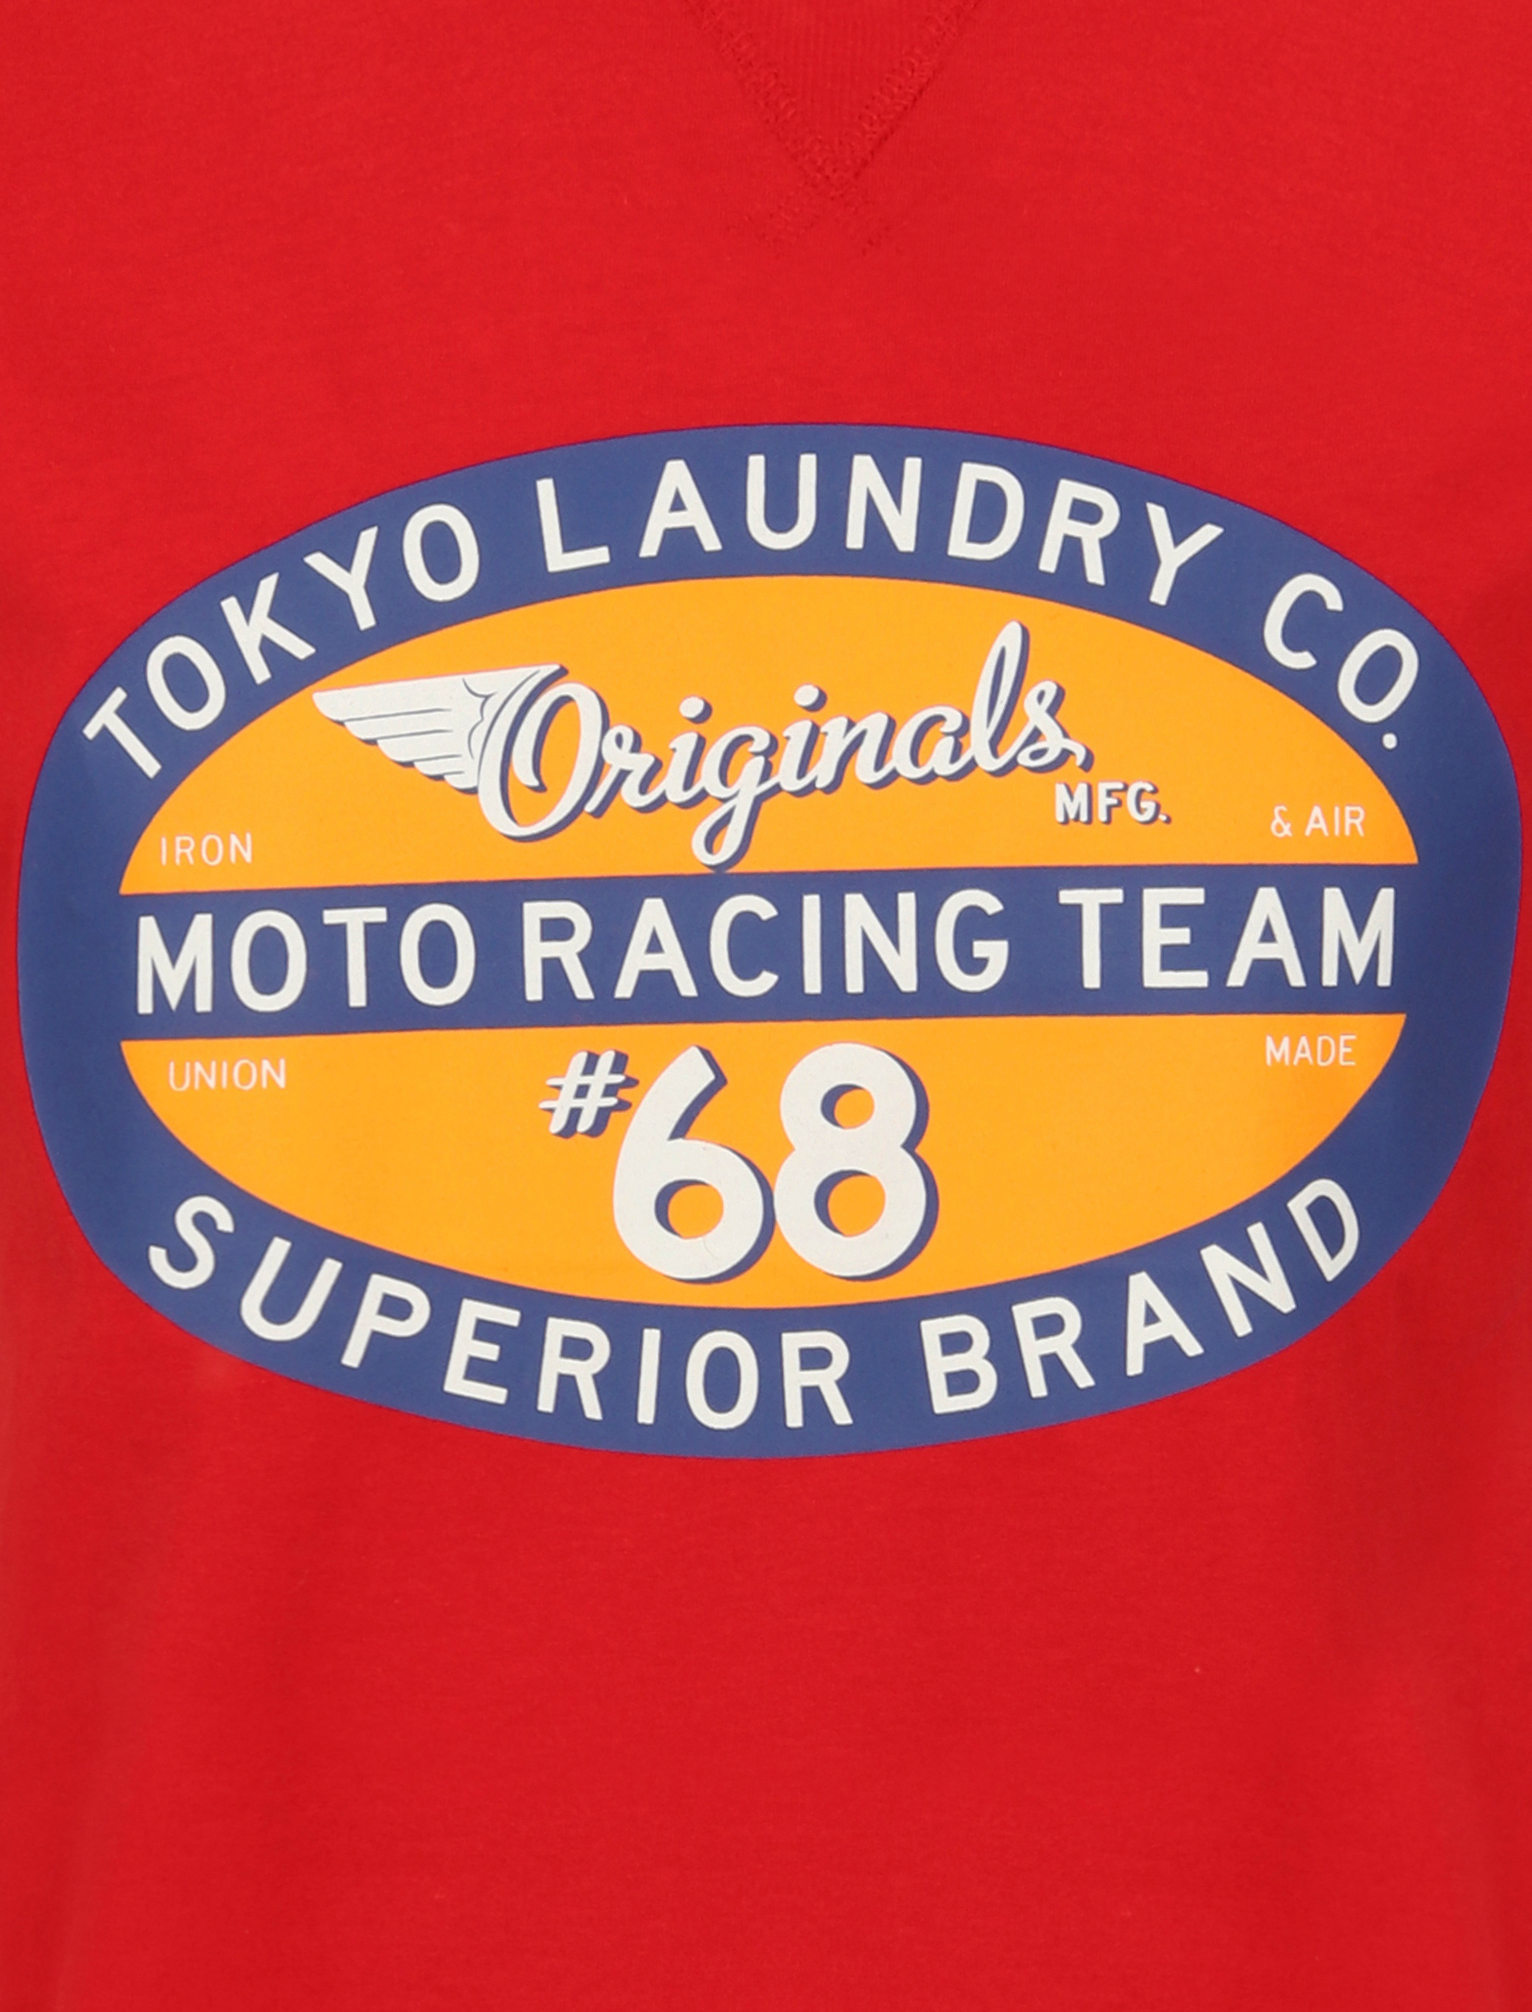 Tokyo-Laundry-Mens-Crew-Neck-T-Shirt-Vintage-Retro-Graphic-Print-Top-Size-S-XXL miniatura 13